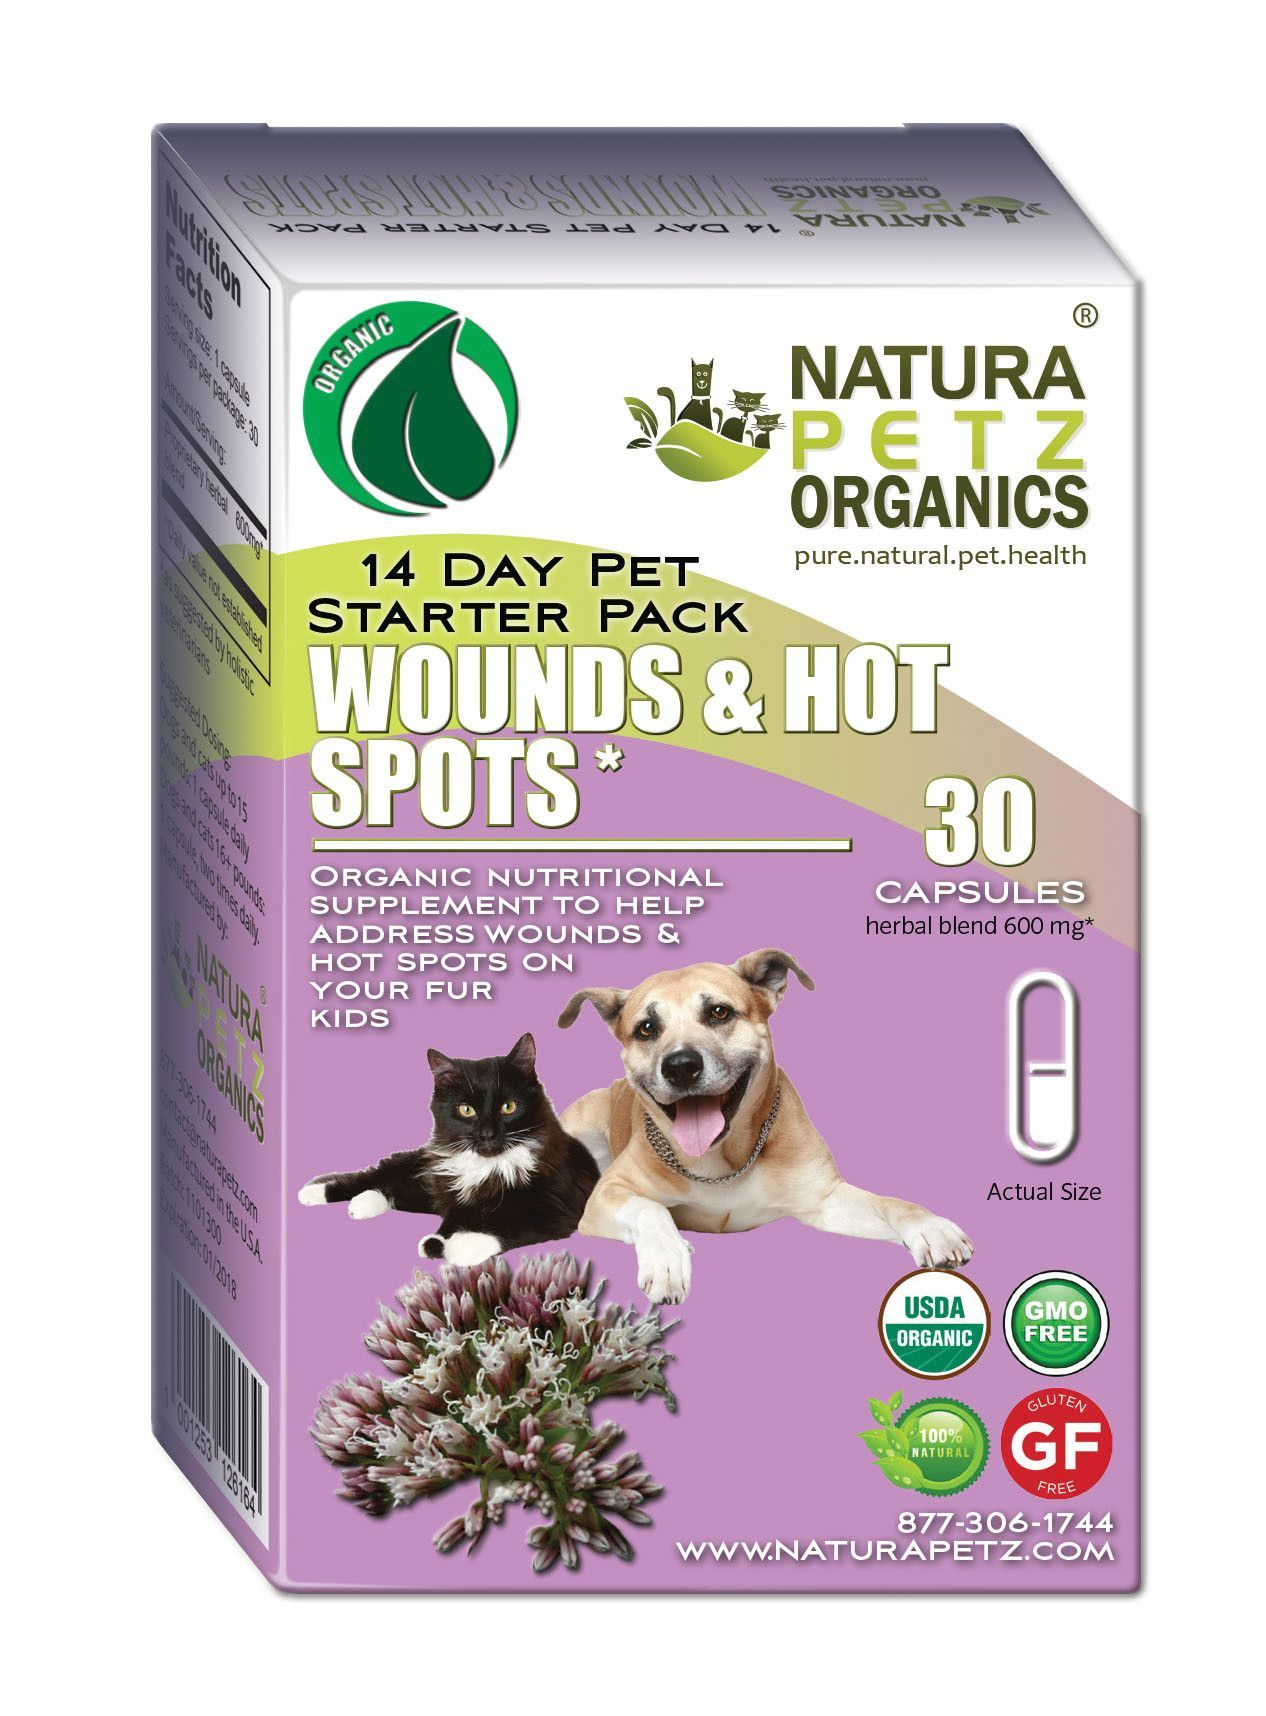 Wound and Hot Spot Starter Pack for Dogs and Cats * Dog